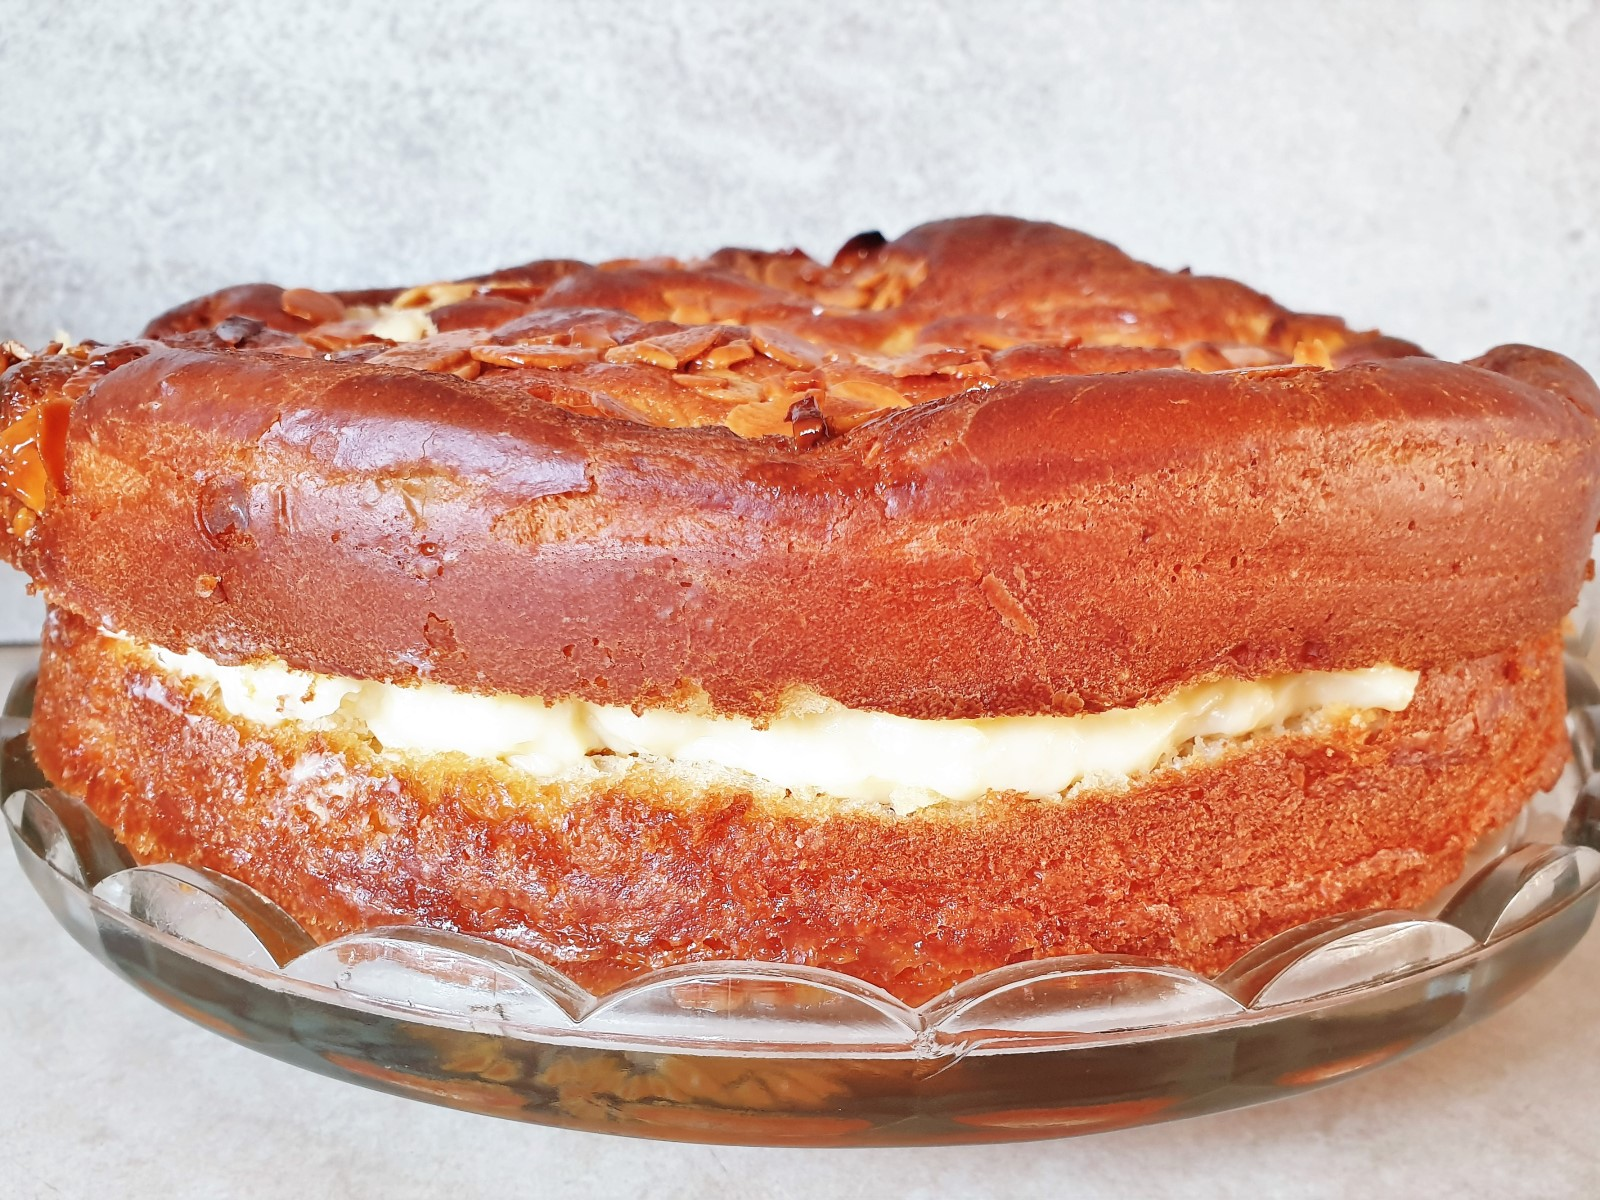 Side on view of the bee sting cake, showing the rise.